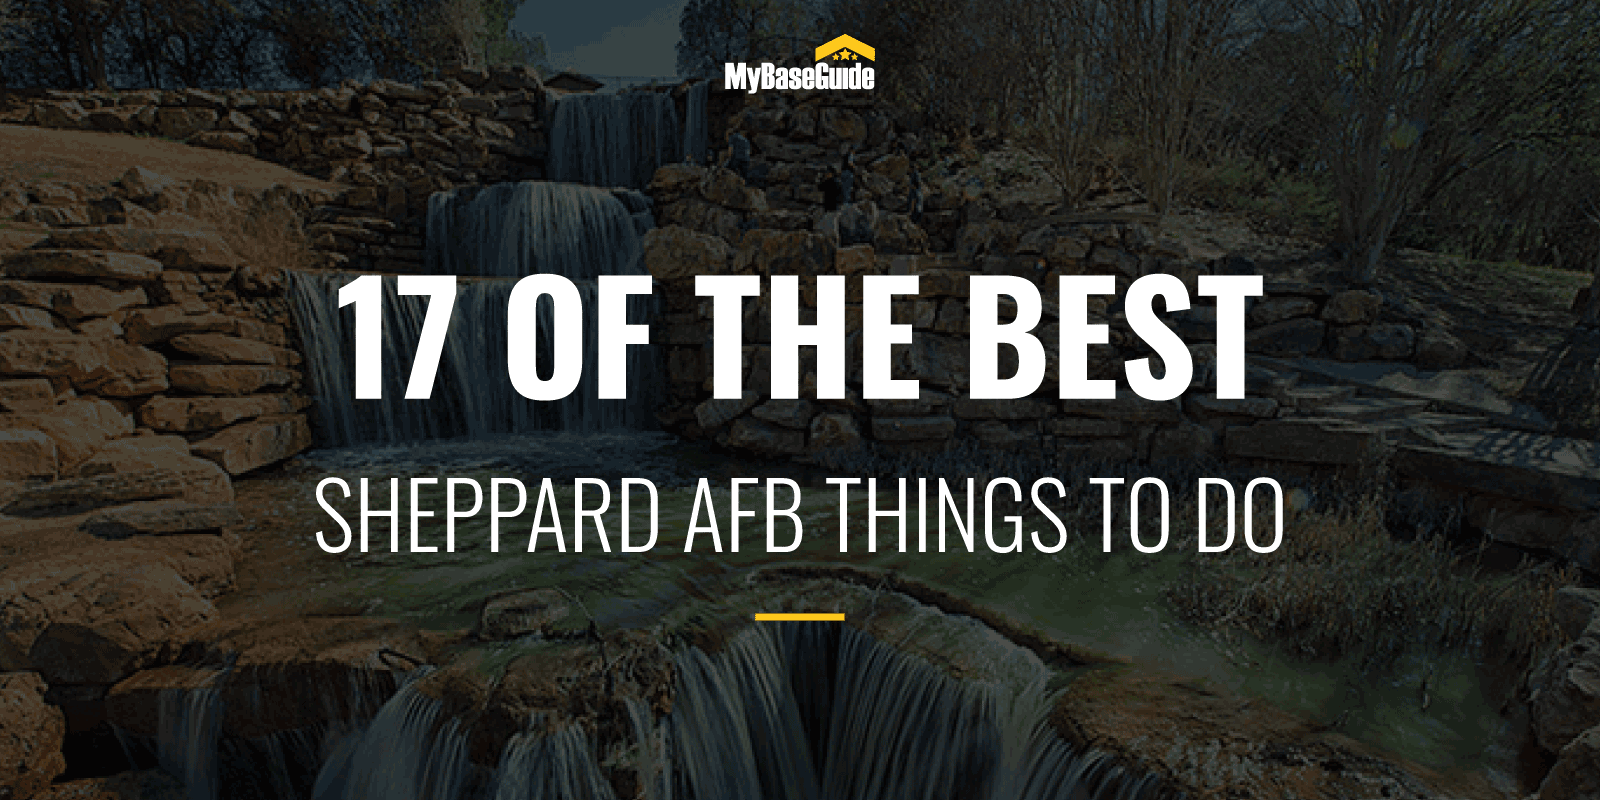 17 Of the Best Sheppard AFB Things to Do